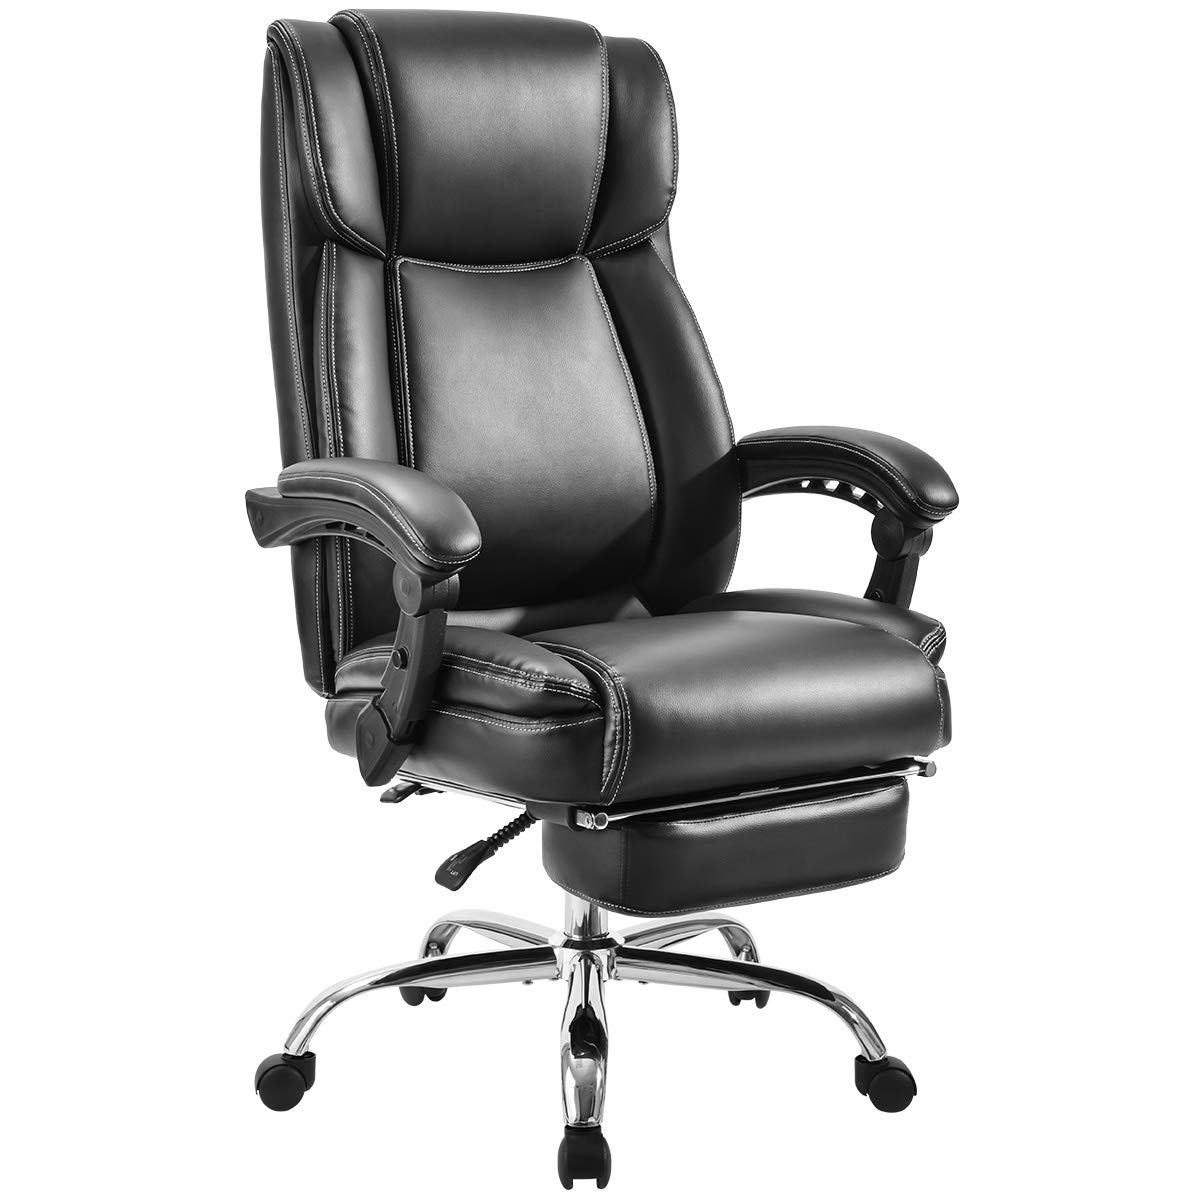 Merax Executive Reclining Office Chair High Back Napping Chair Big & Tall Thick Padded Ergonomic Office Recliner Computer Desk Chair with Footrest for Home and Office (Black) by Merax